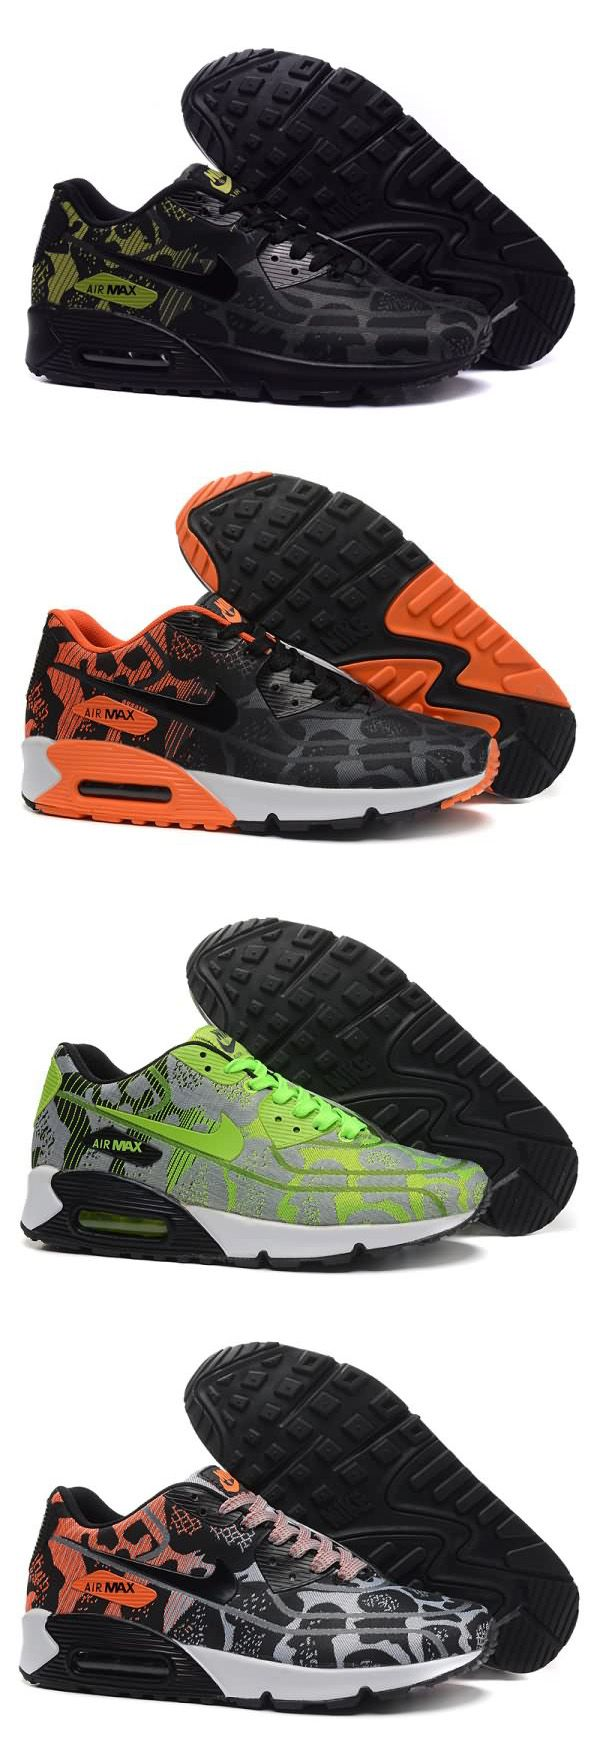 Cheap Nike Air Max 90 Mens shoes Leopard Free Shipping #Max90